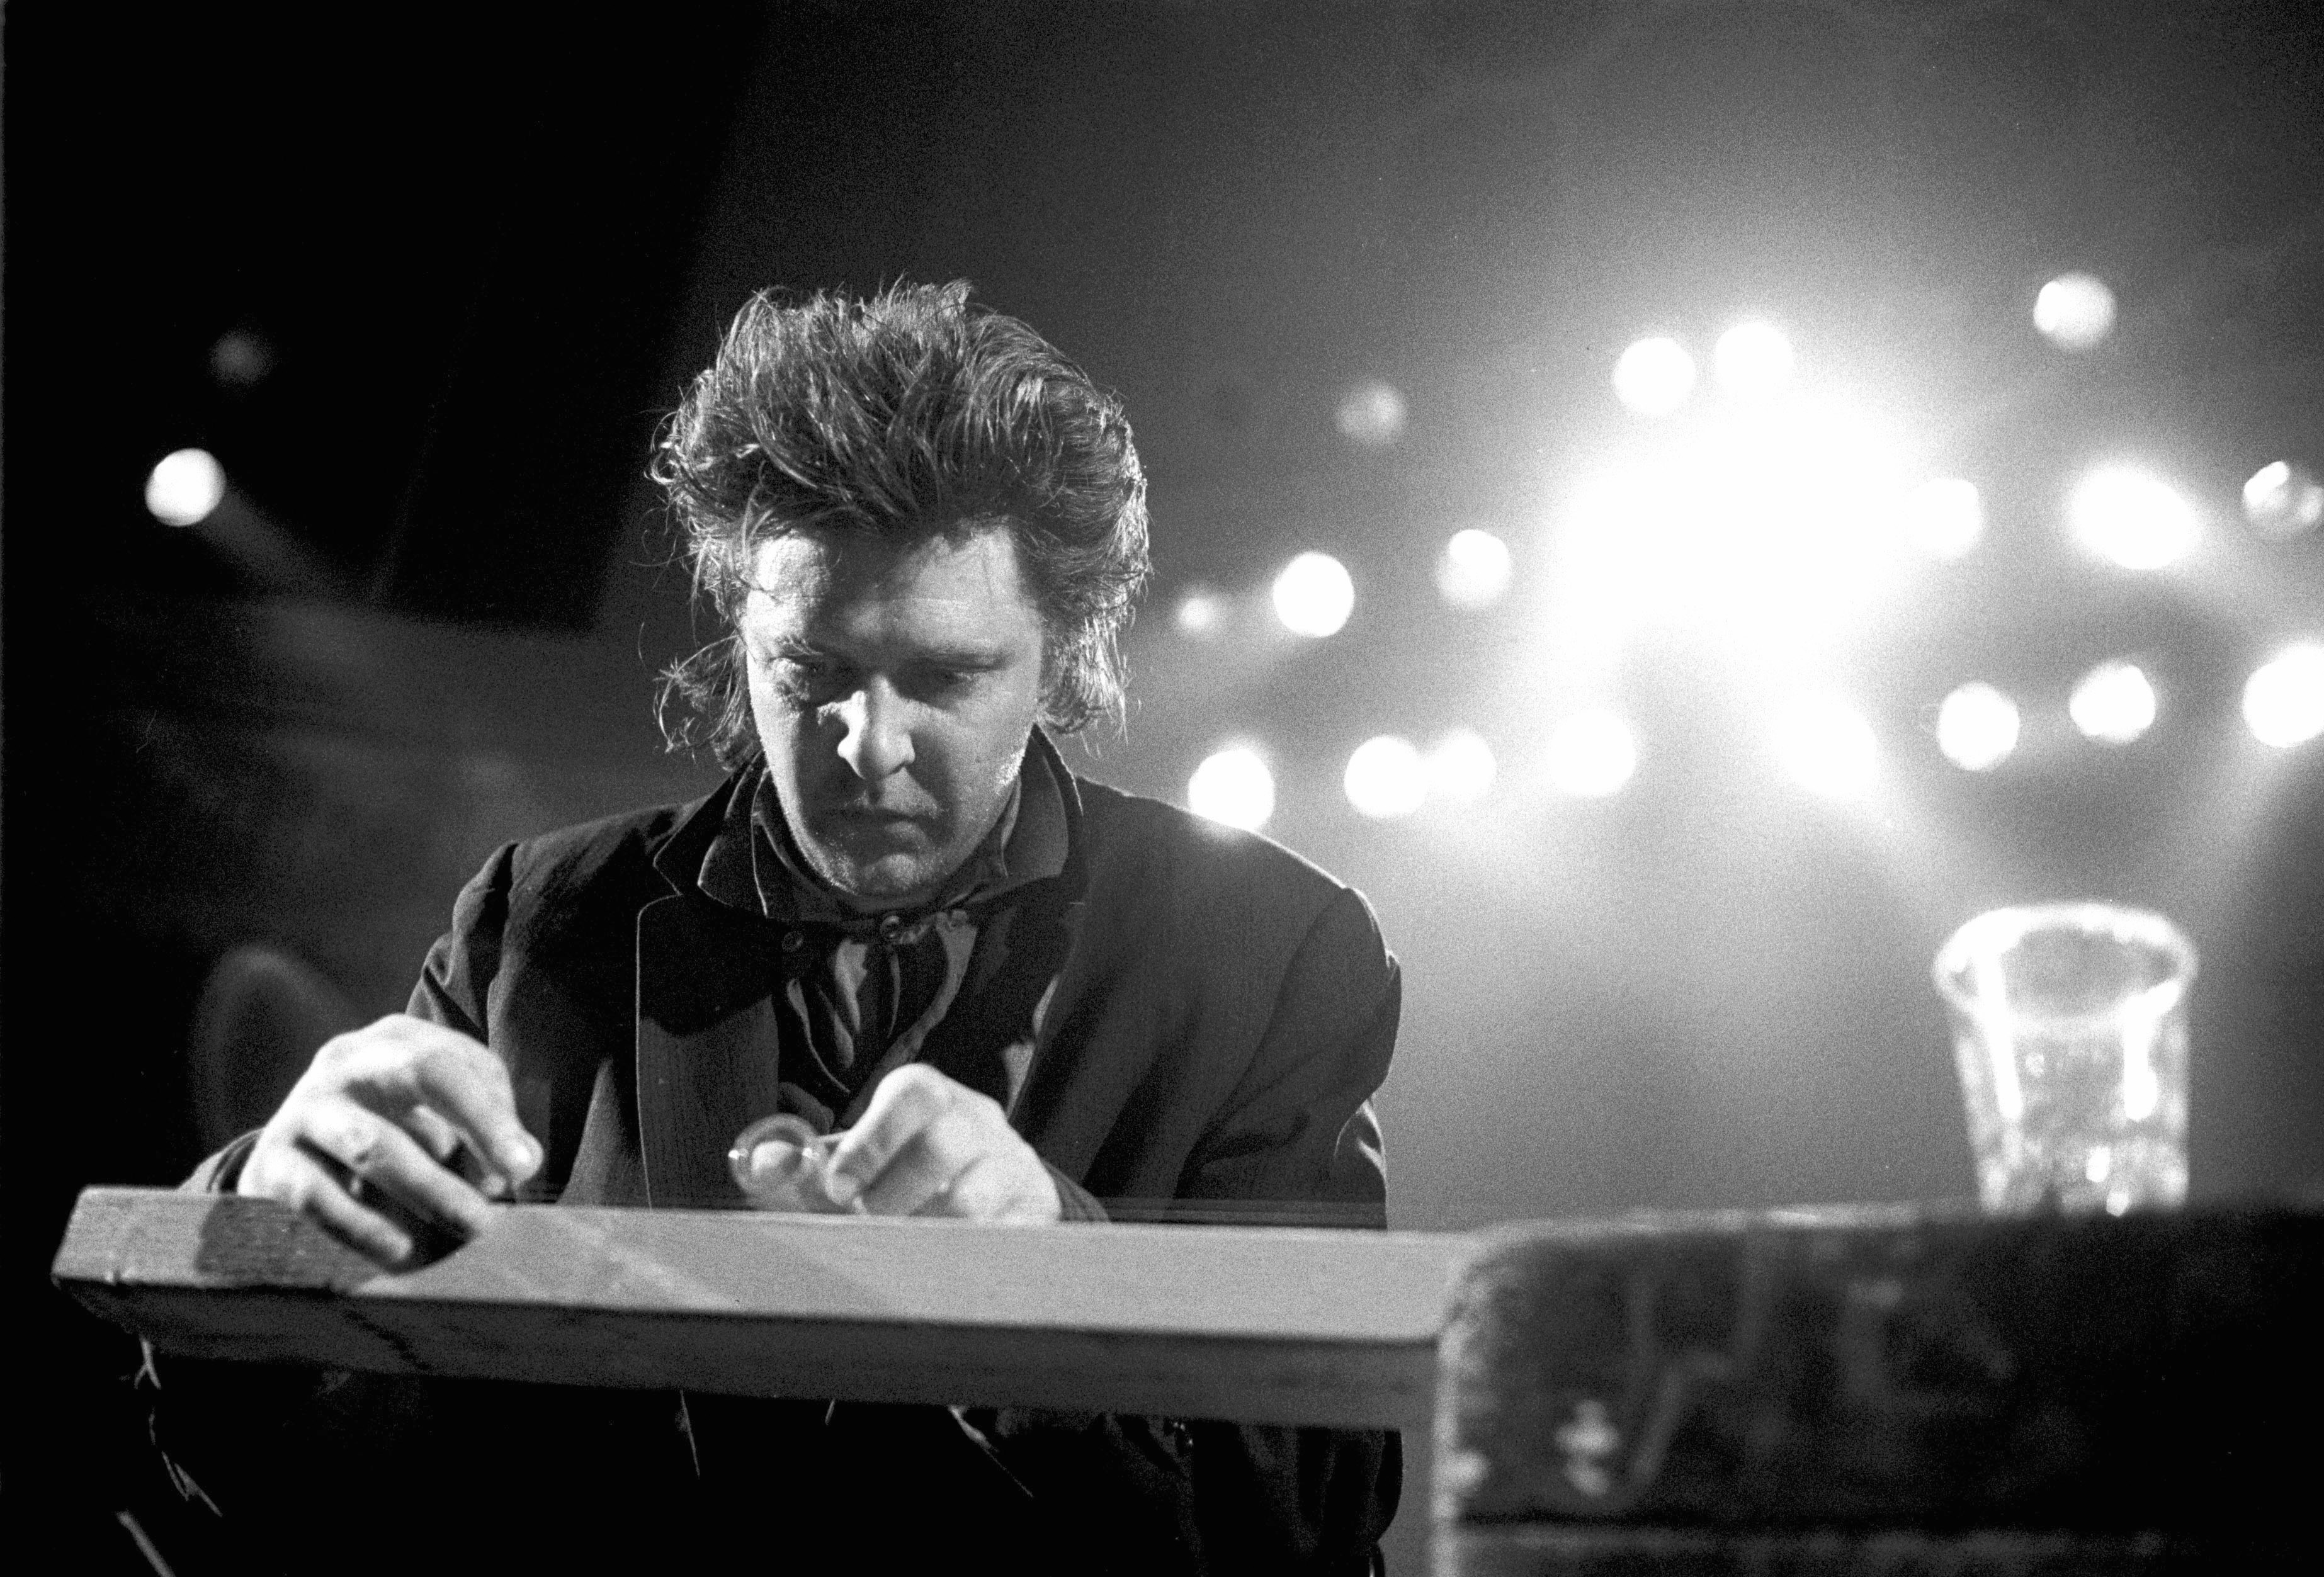 6e1c09362 American composer and guitarist Glenn Branca performs live on stage at the  Paradiso in Amsterdam